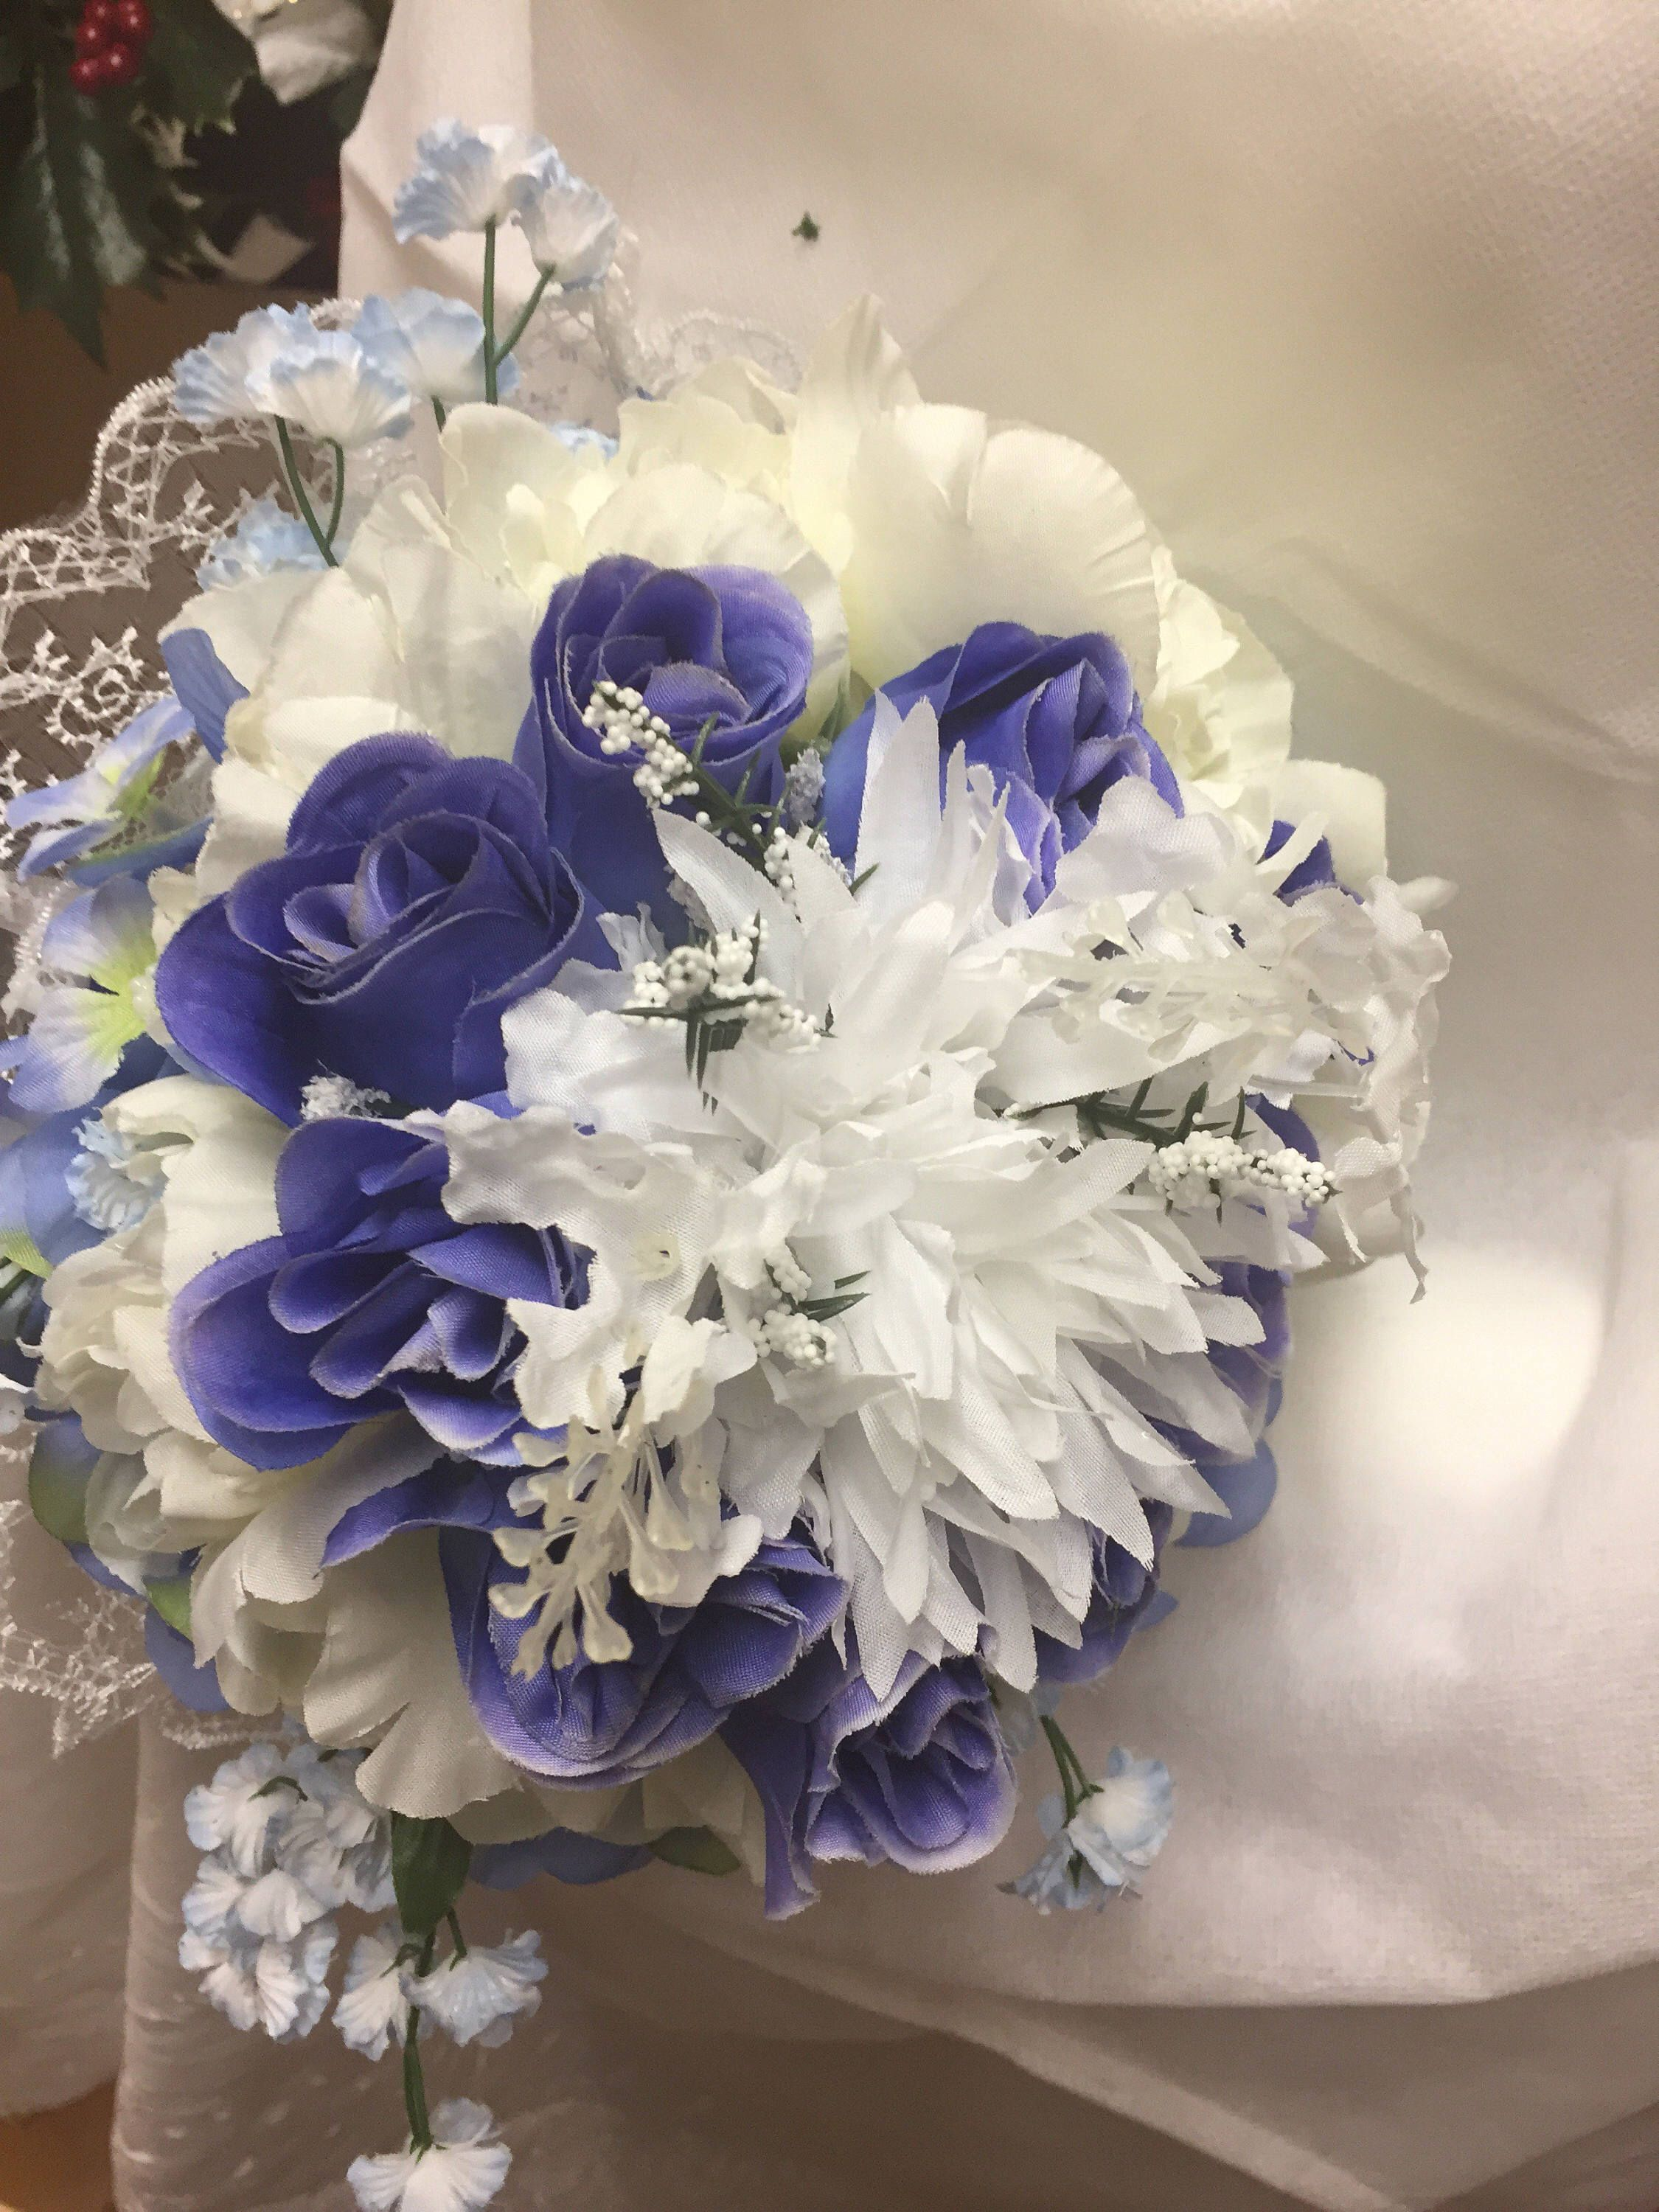 Wedding bouquet blue and white silk flowers artificial free shipping wedding bouquet blue and white silk flowers artificial free shipping in usa only mightylinksfo